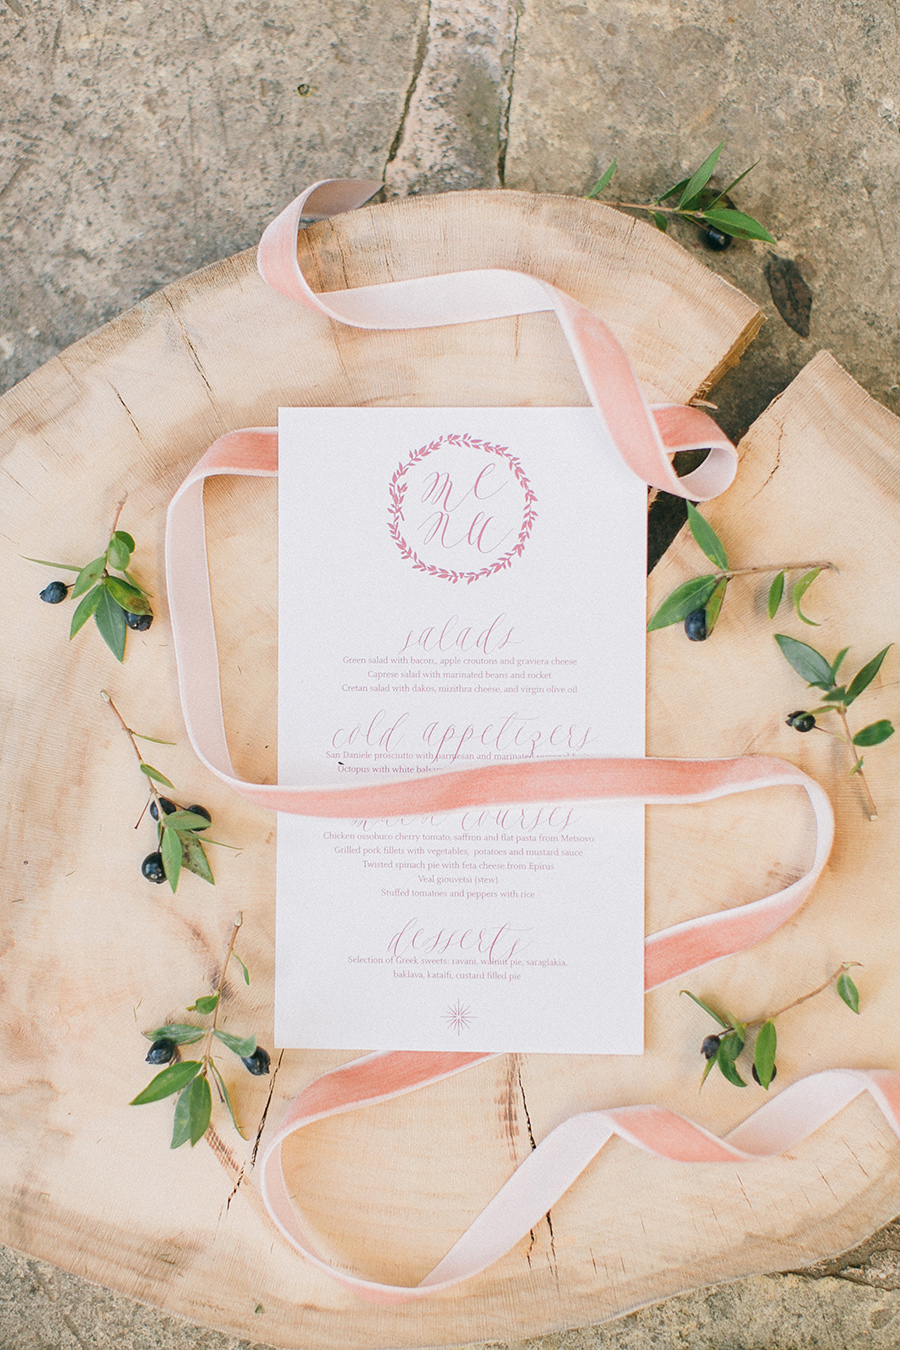 Boho Chic Inspired Wedding Menu with burgundy details / styled shoot coordinated by Love 4 Wed / photo by Anna Roussos Photography